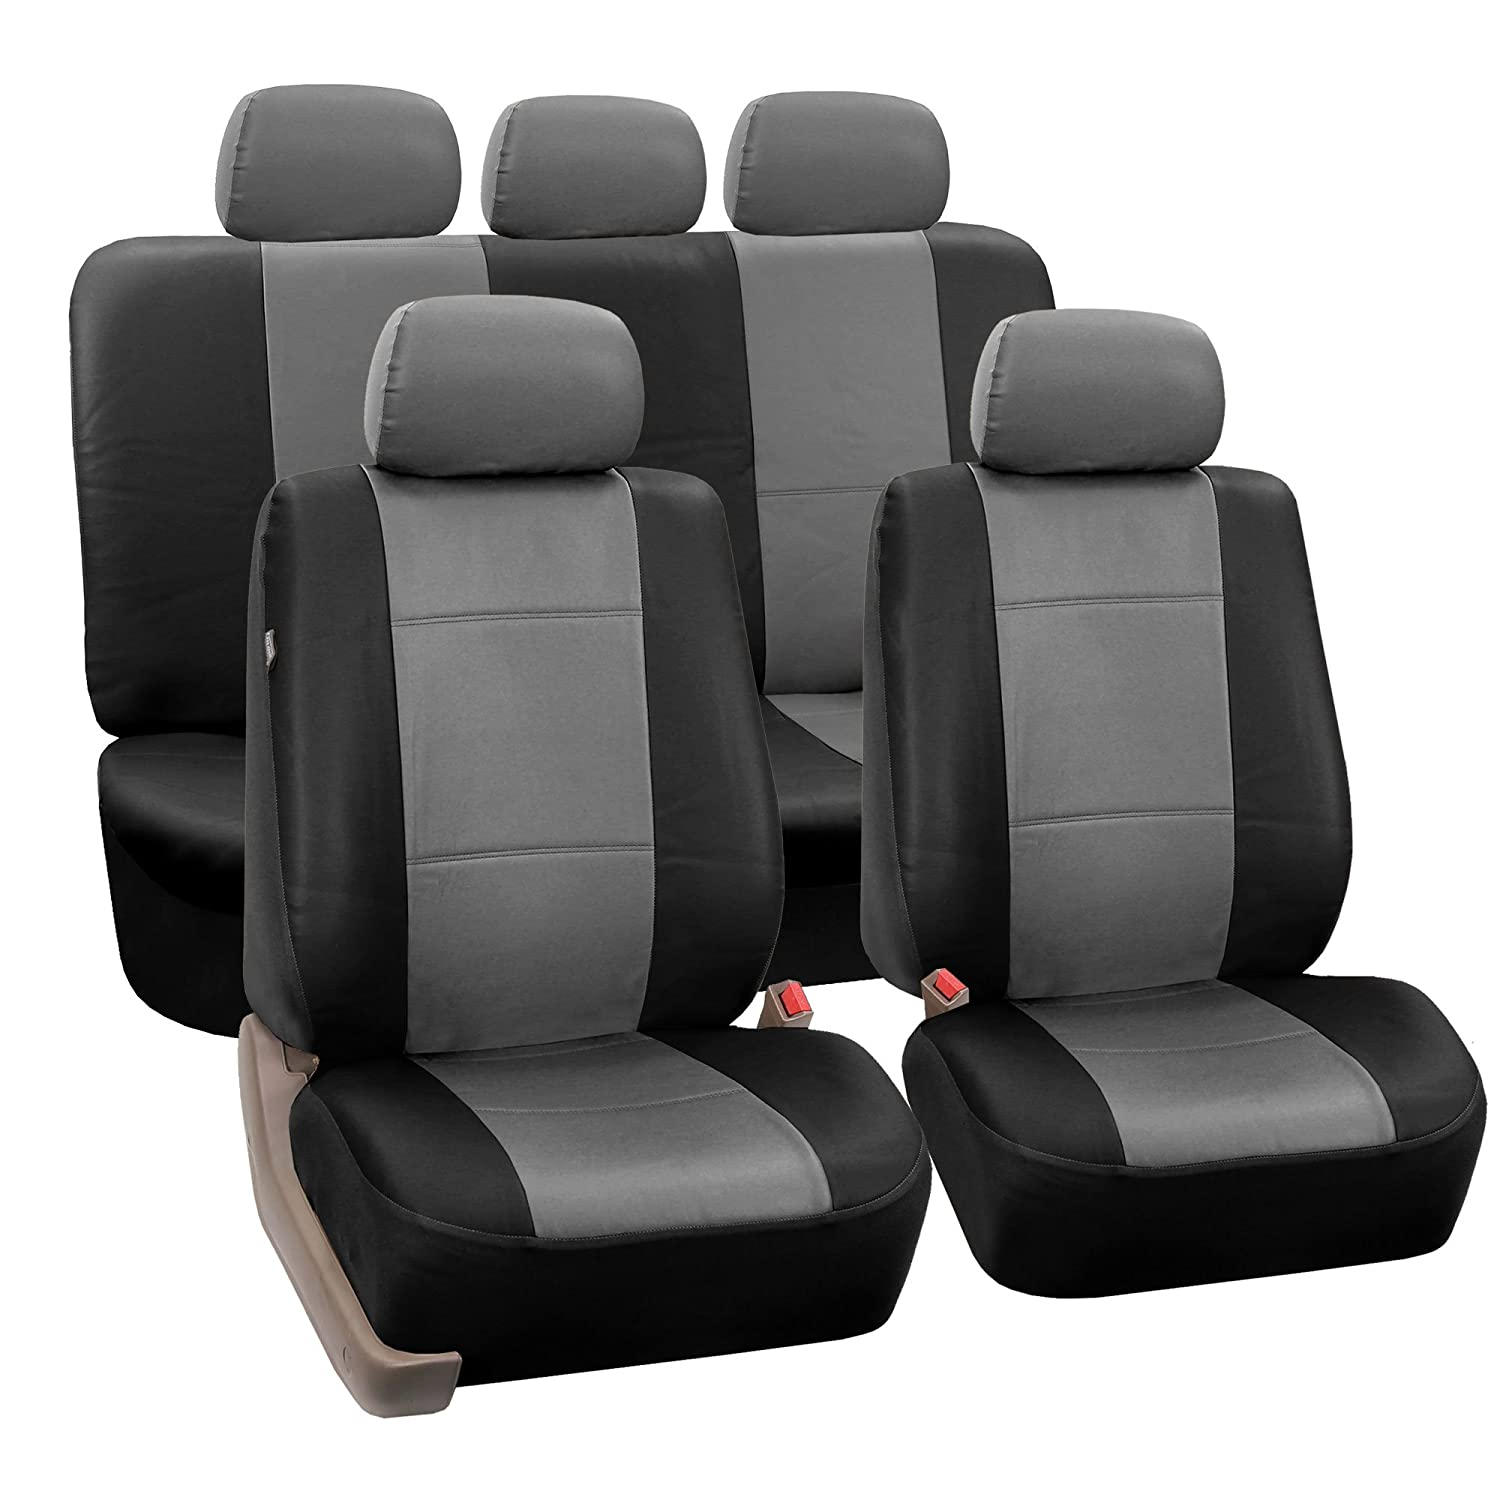 Fh Pu002115 Classic Pu Leather Car Seat Covers Airbag 99 Gmc Van Wiring Diagram Door Compatible And Split Bench Grey Black Color Automotive